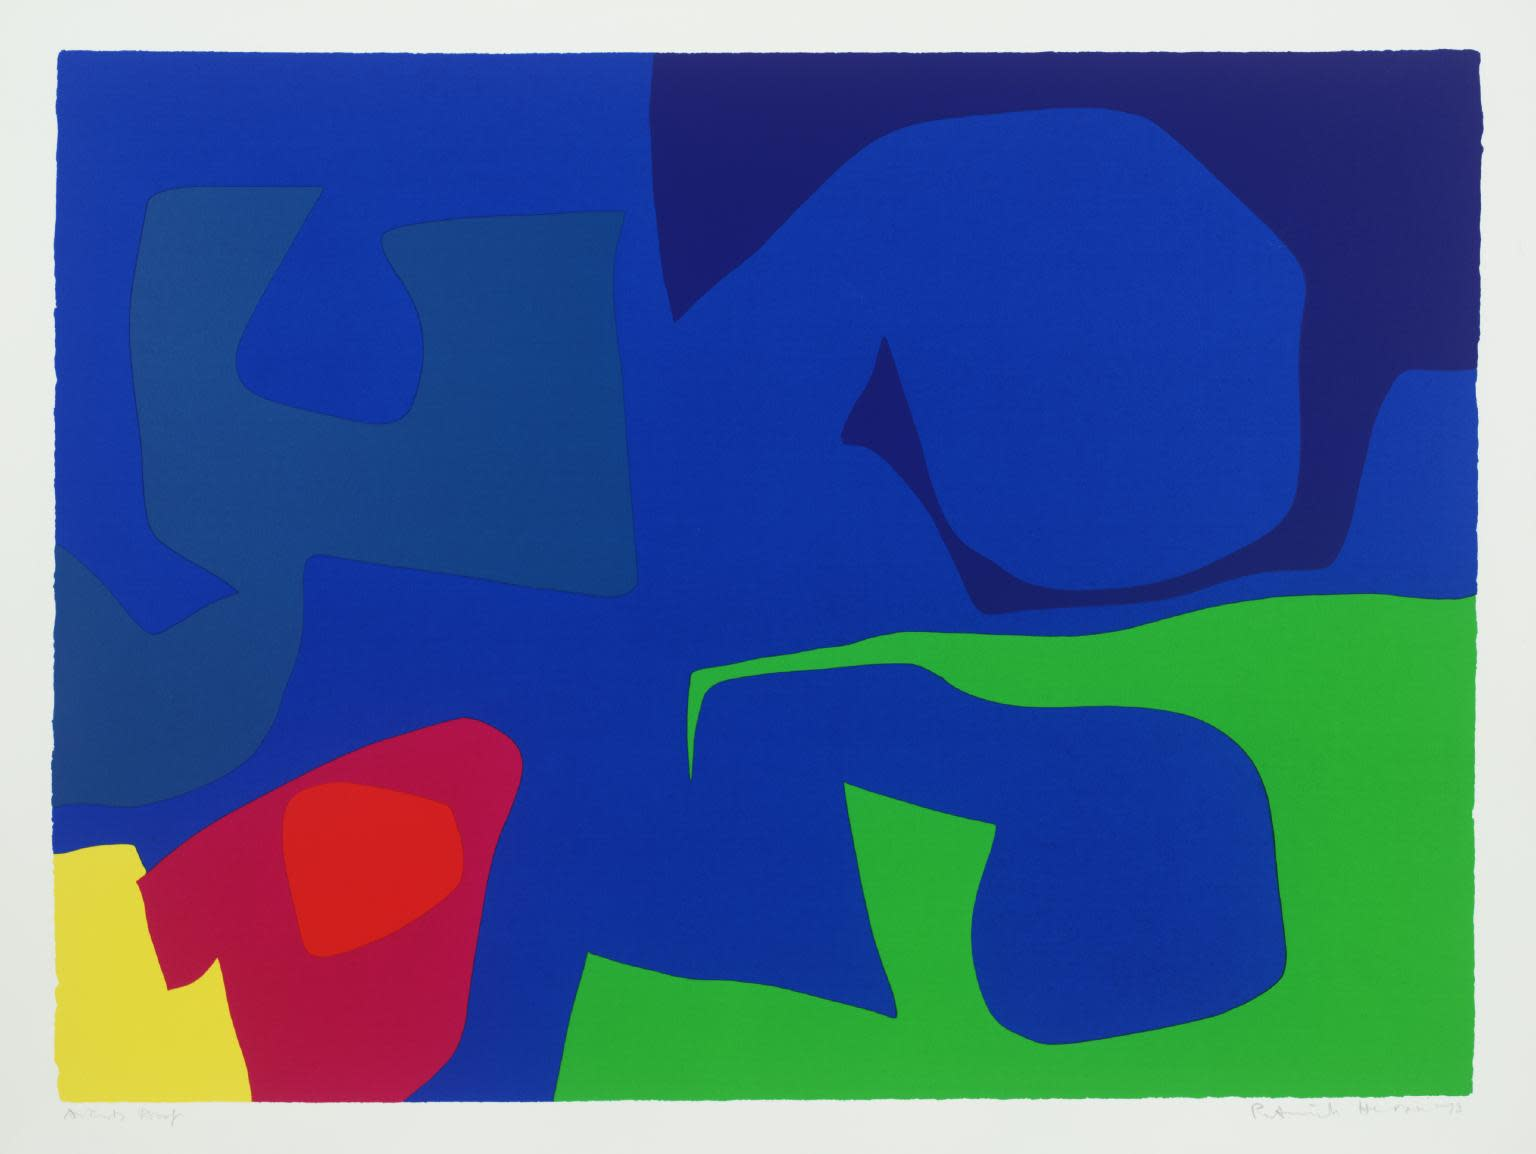 "<span class=""link fancybox-details-link""><a href=""/artists/74-patrick-heron/works/1012/"">View Detail Page</a></span><div class=""artist""><strong>Patrick Heron</strong></div> <div class=""title""><em>January 1973: 19</em>, 1973</div> <div class=""signed_and_dated"">signed and dated in pencil, verso is the publishers stamp<br /> from the edition of 72</div> <div class=""medium"">screenprint</div> <div class=""dimensions"">58.6 x 81.4cm</div>"